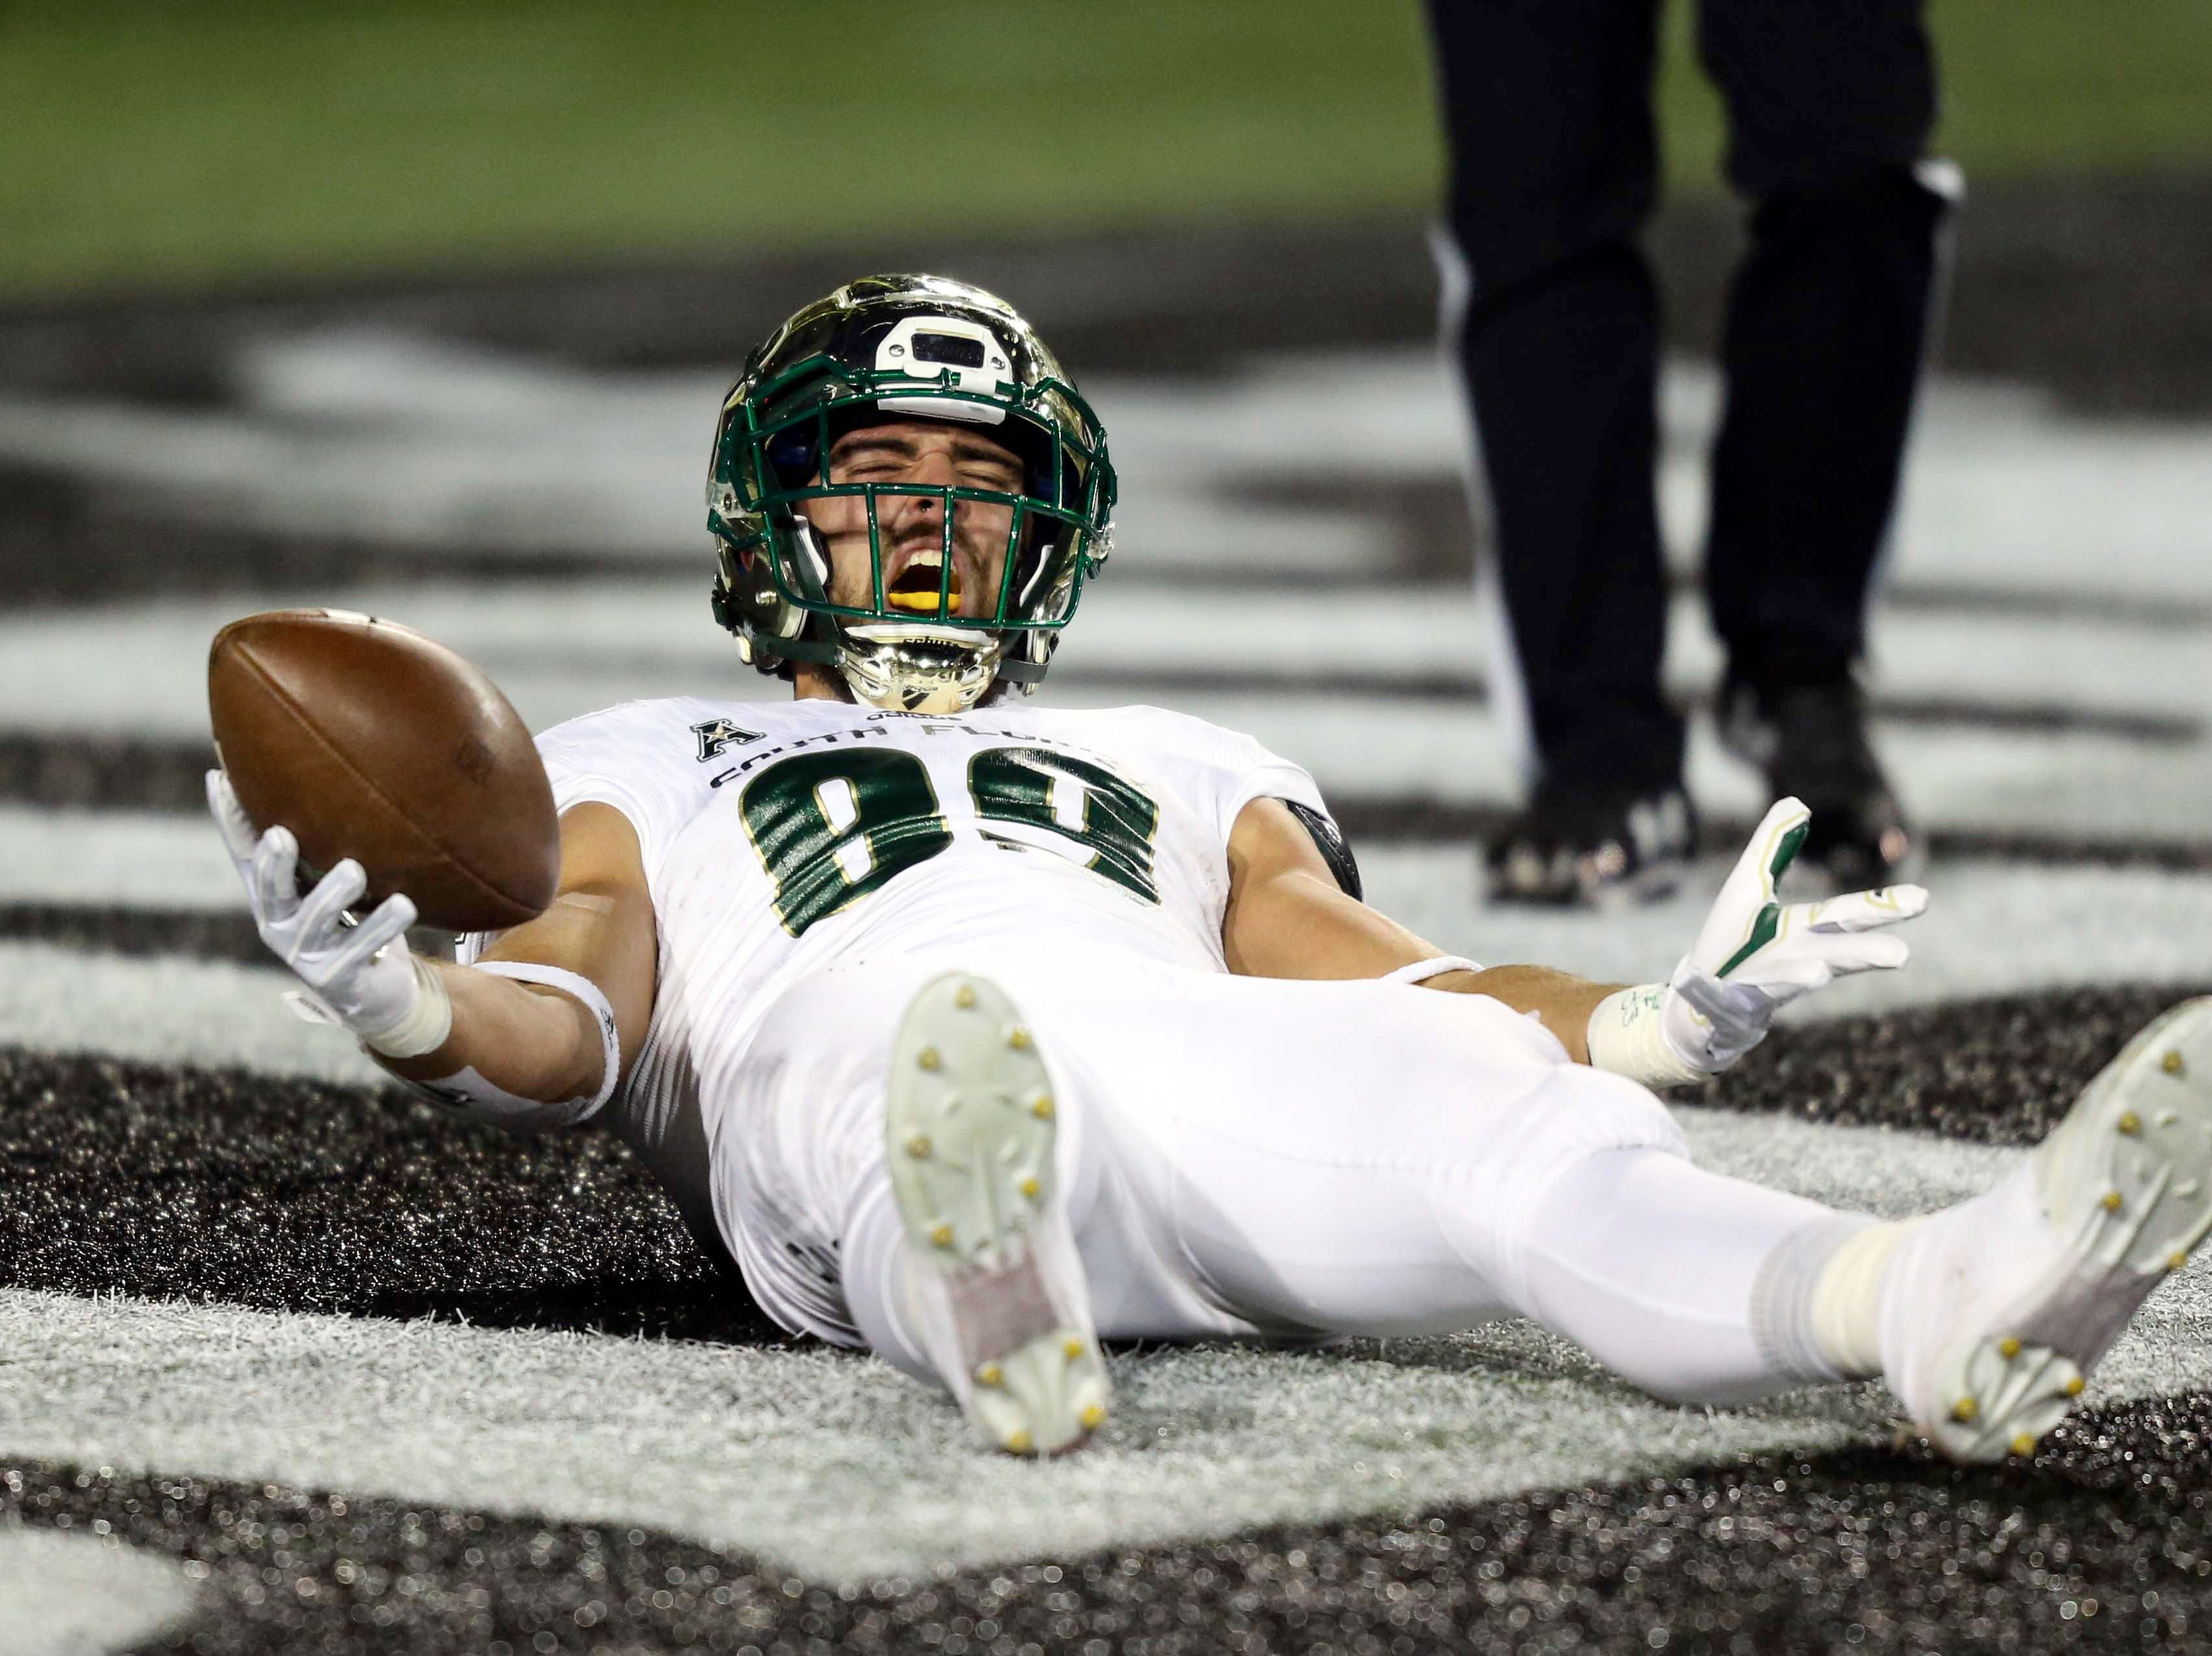 South Florida Bulls tight end Mitchell Wilcox (89) reacts to scoring a touchdown against the Cincinnati Bearcats in the first half at Nippert Stadium.